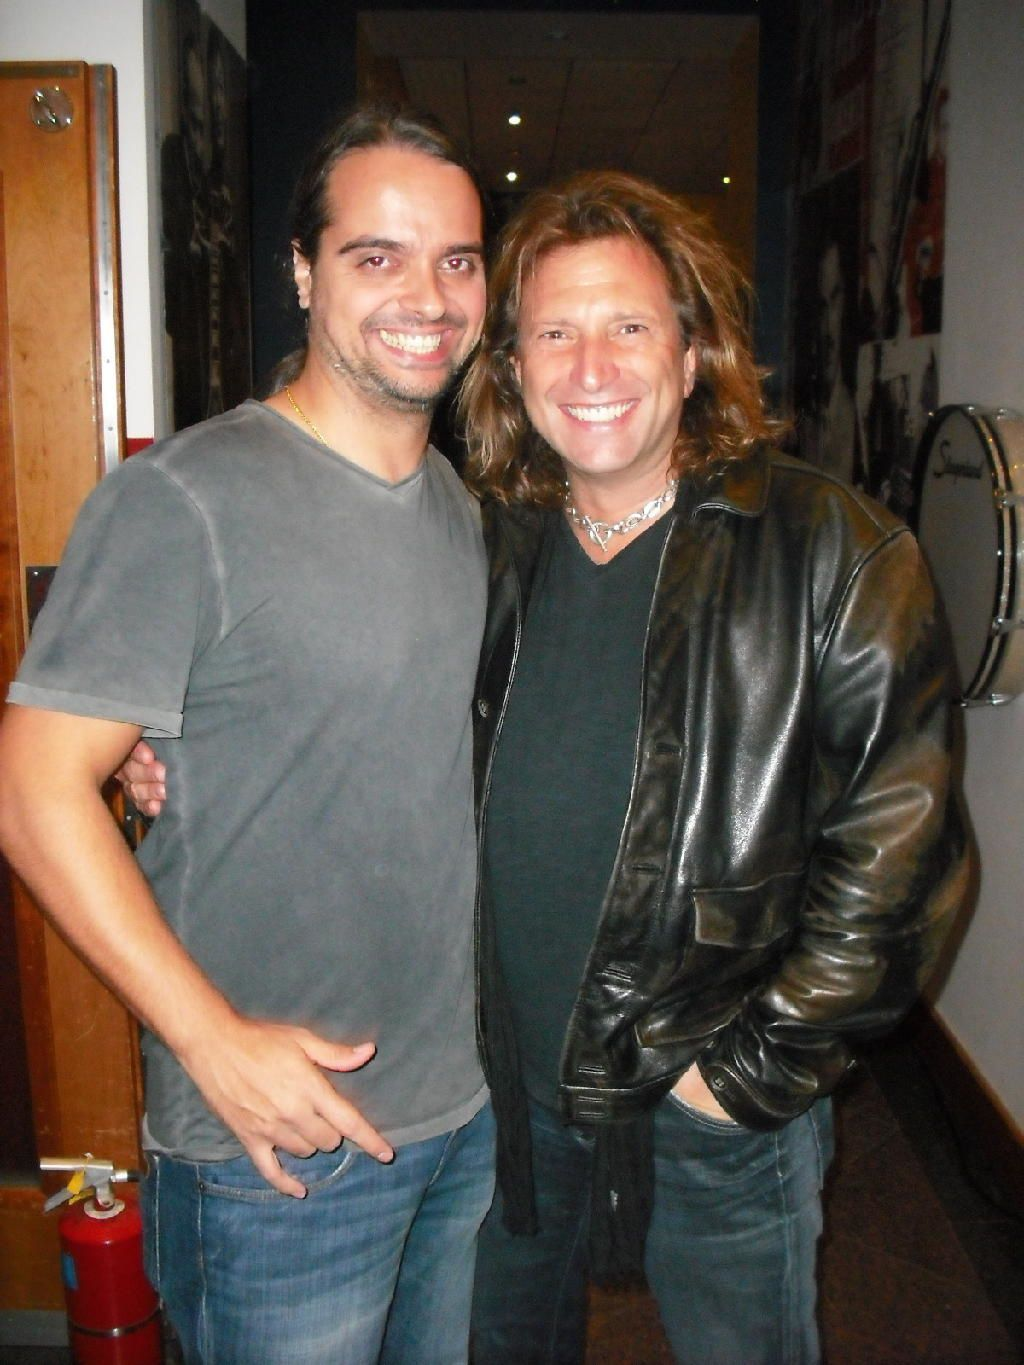 Rob Affuso (Skid Row) and fan